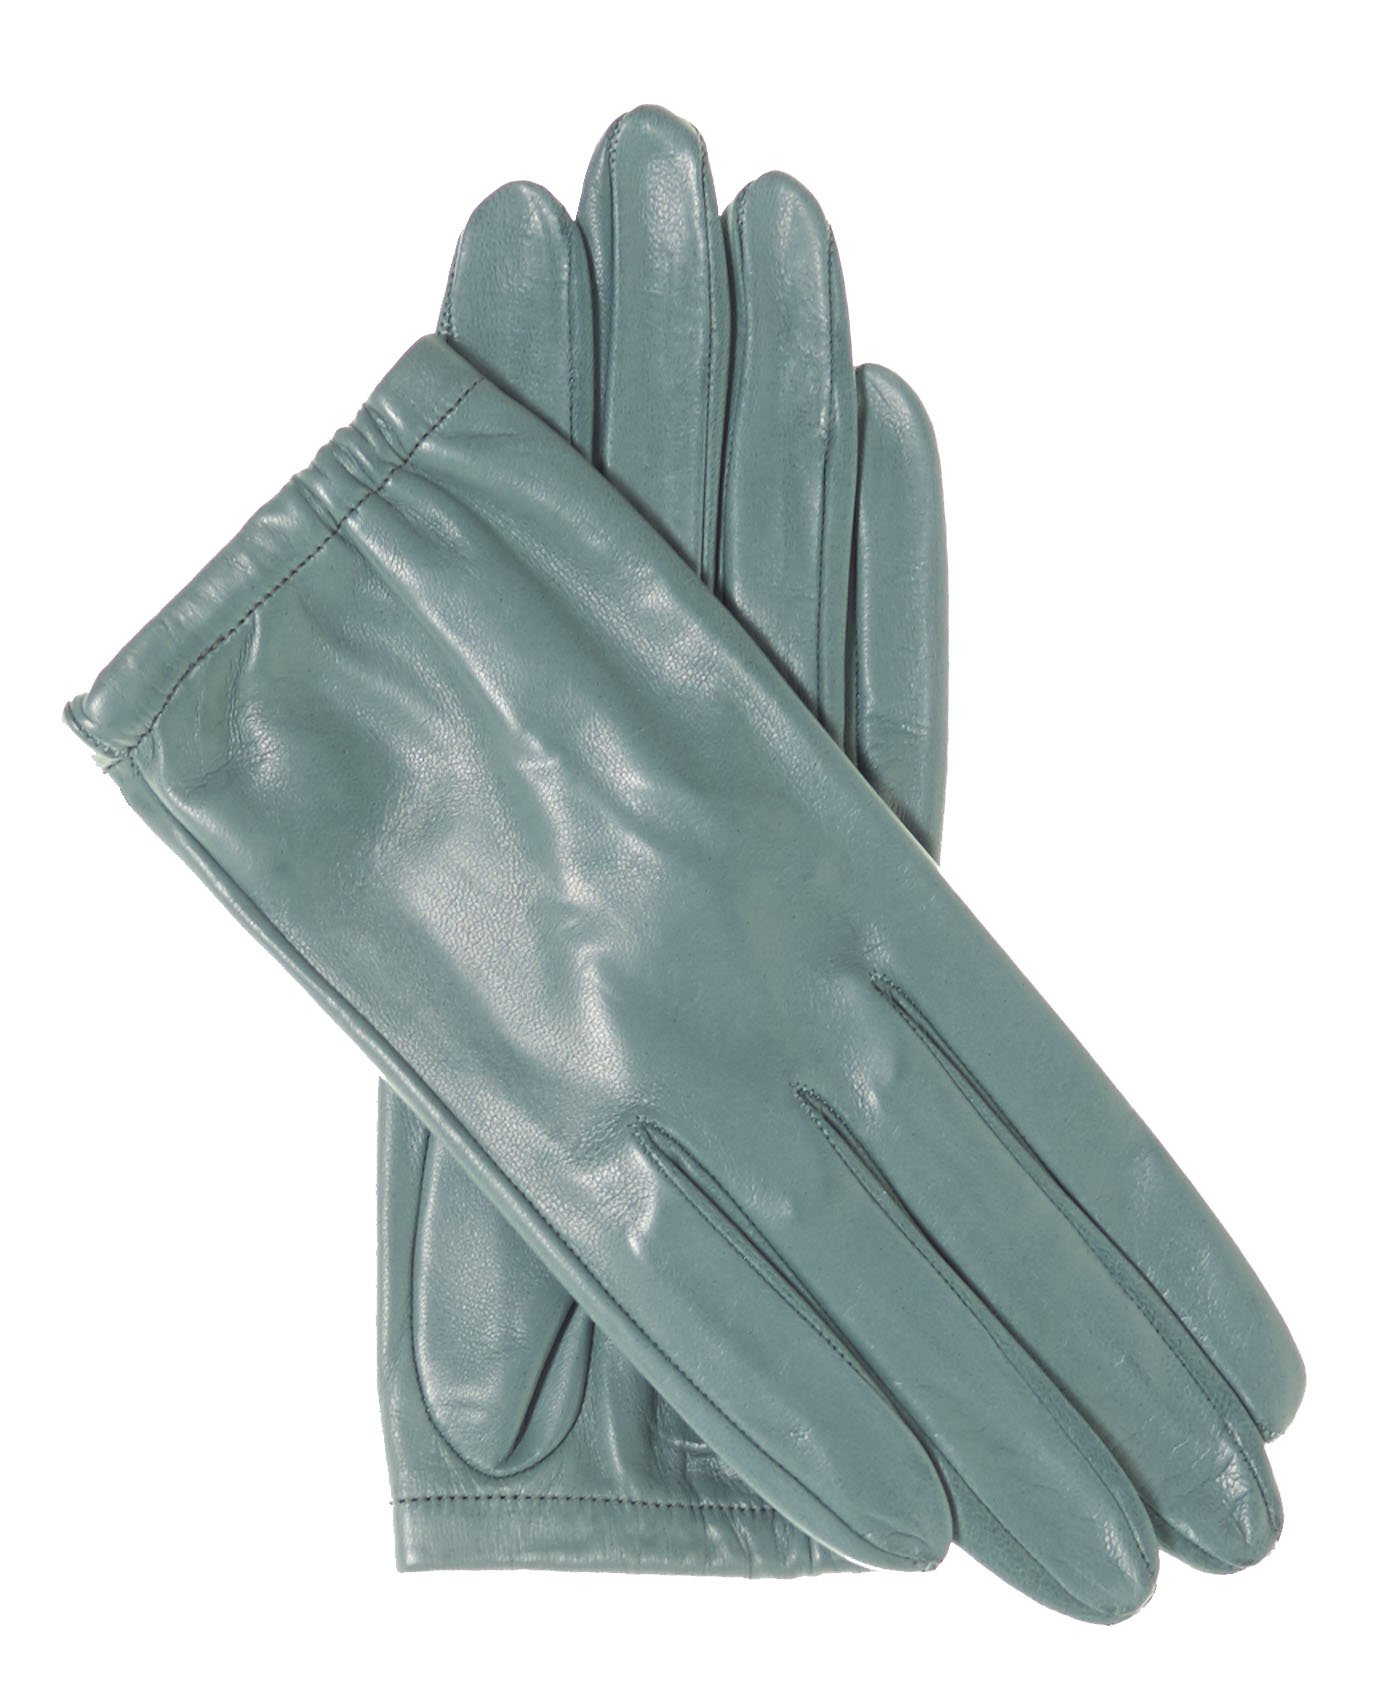 Fratelli Orsini Women's Unlined Italian Fashion Leather Gloves with Short Wrist Size 8 1/2 Color Sage